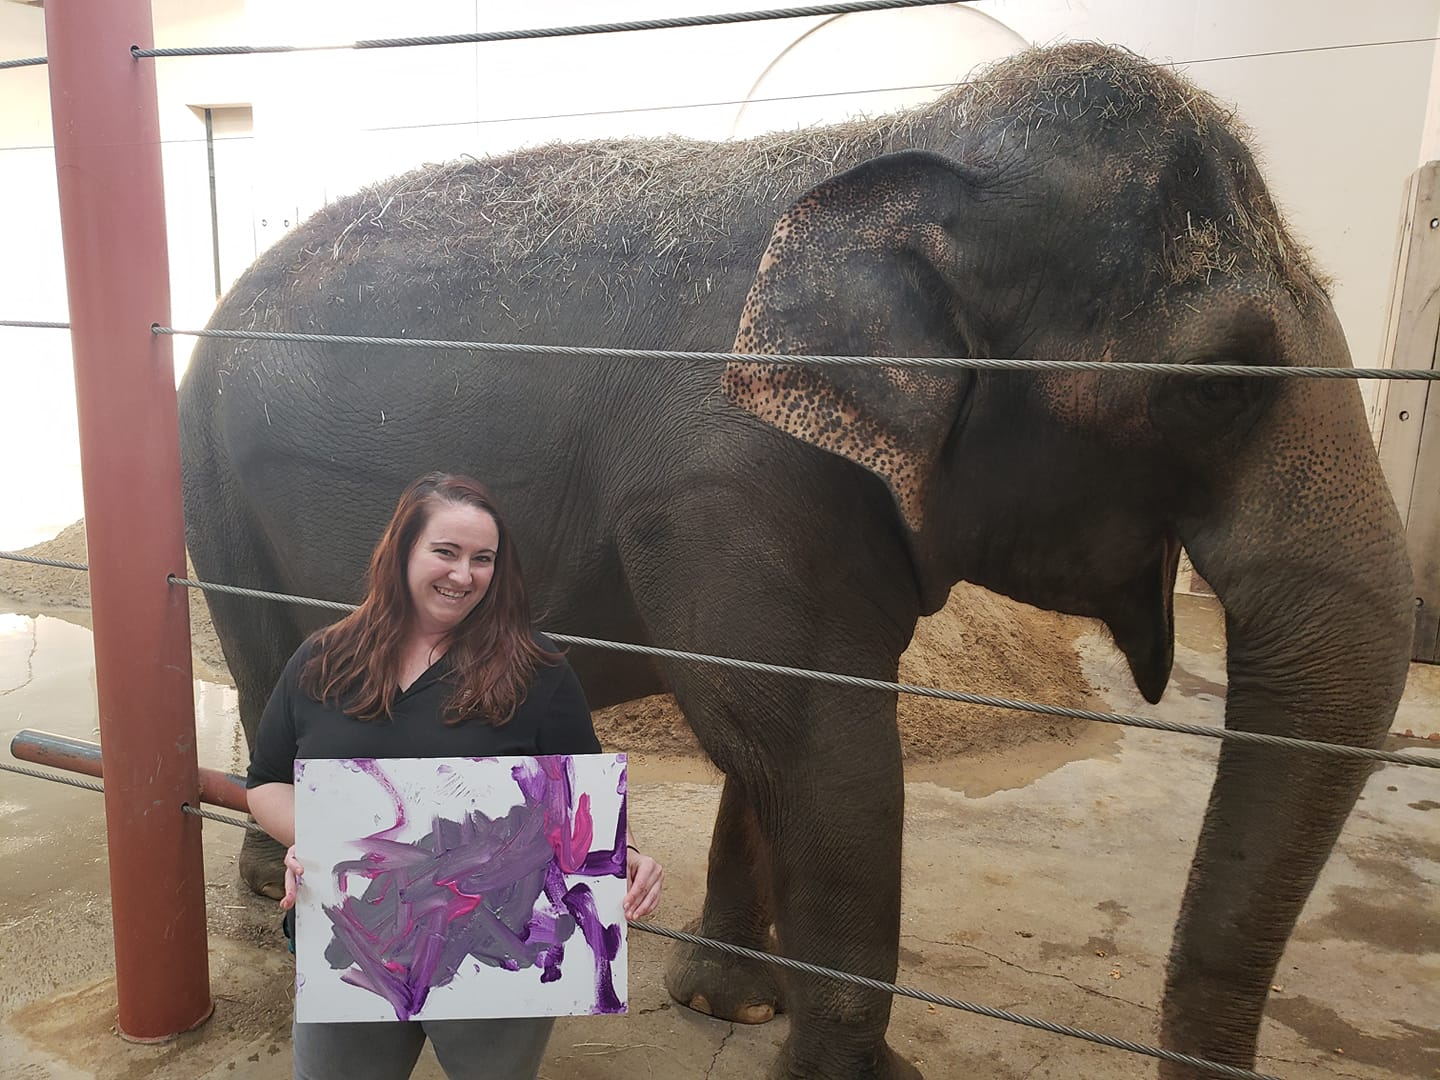 Kaitlin with Elephant Art